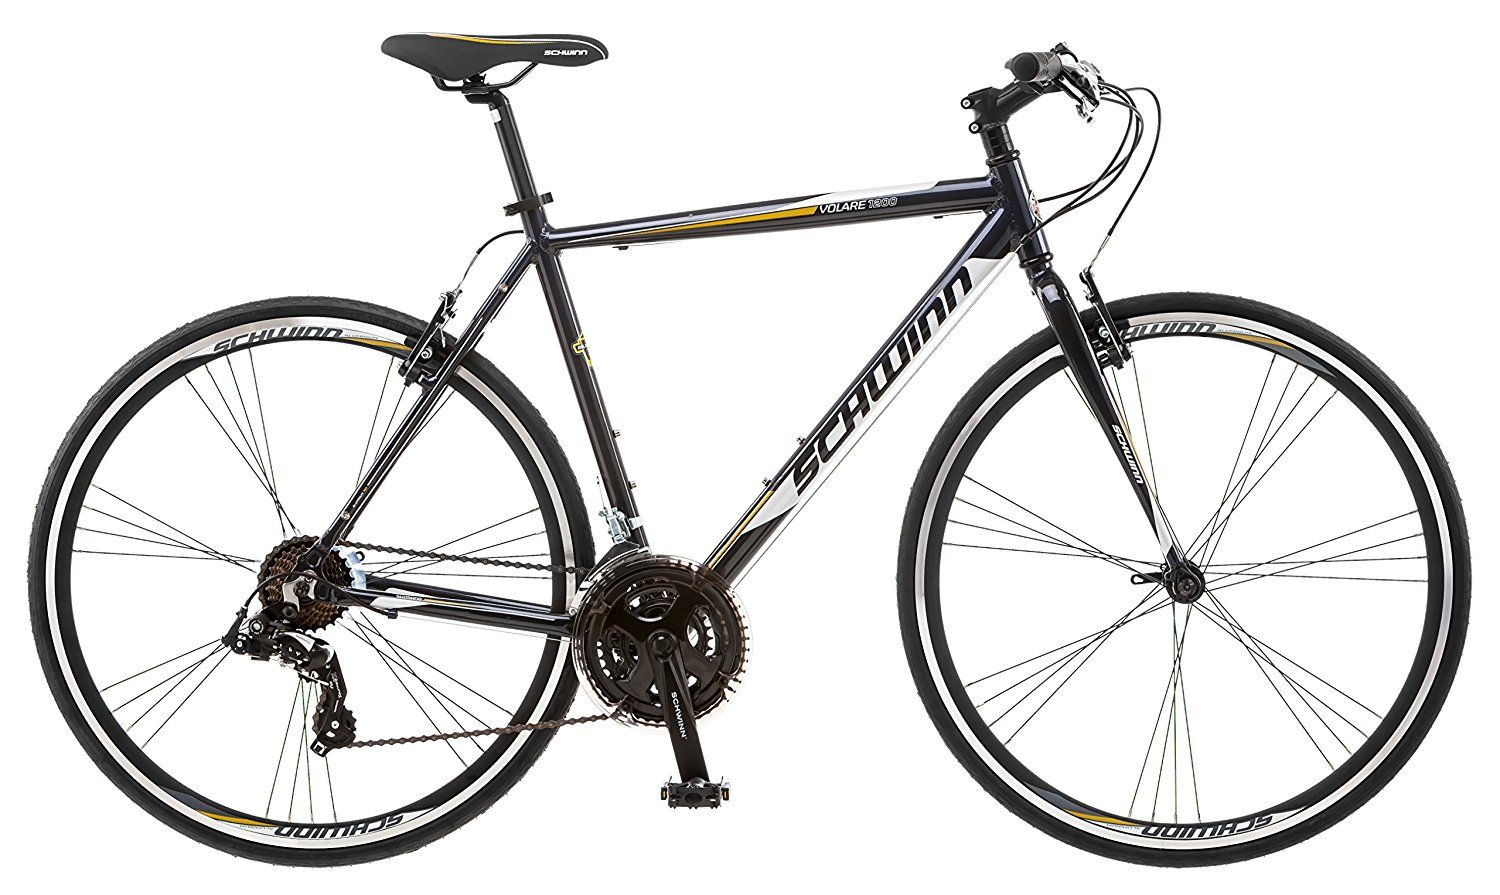 Pin By Dorothy On Best Bike For Male Riders Hybrid Bike Schwinn